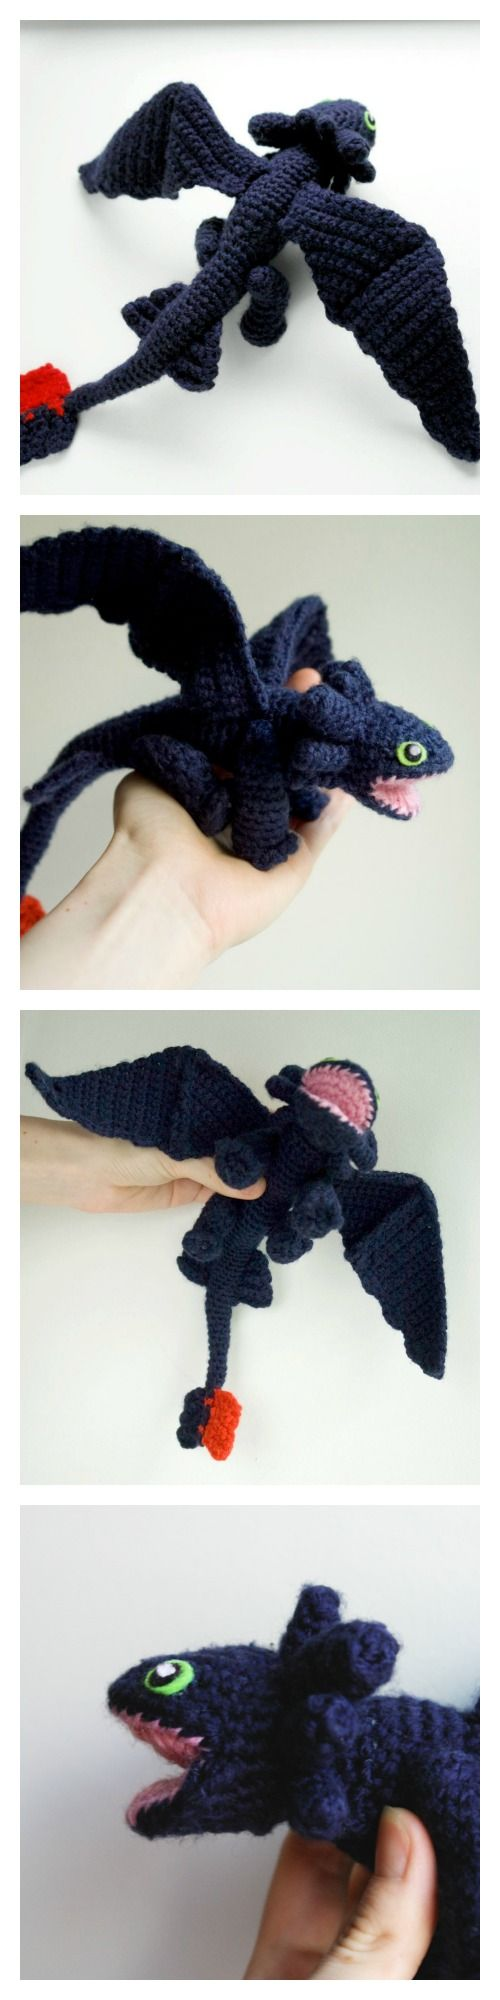 Knitting Pattern Toothless Dragon : My Hobby Is Crochet: Crochet pattern for amigurumi Toothless dragon